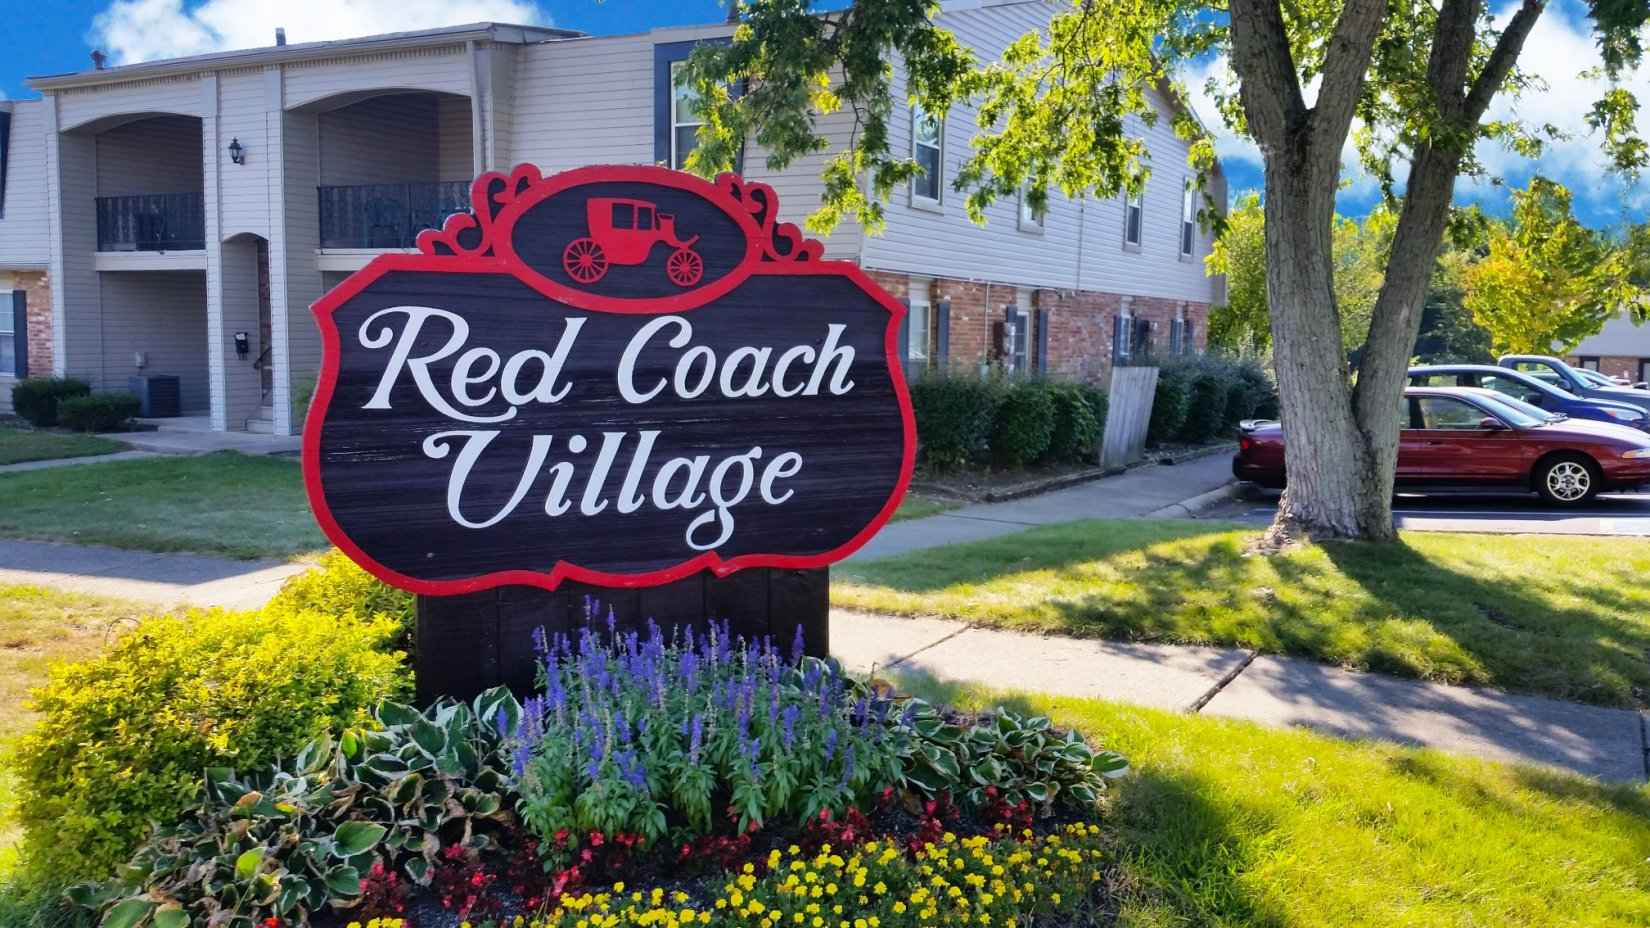 Red Coach Village